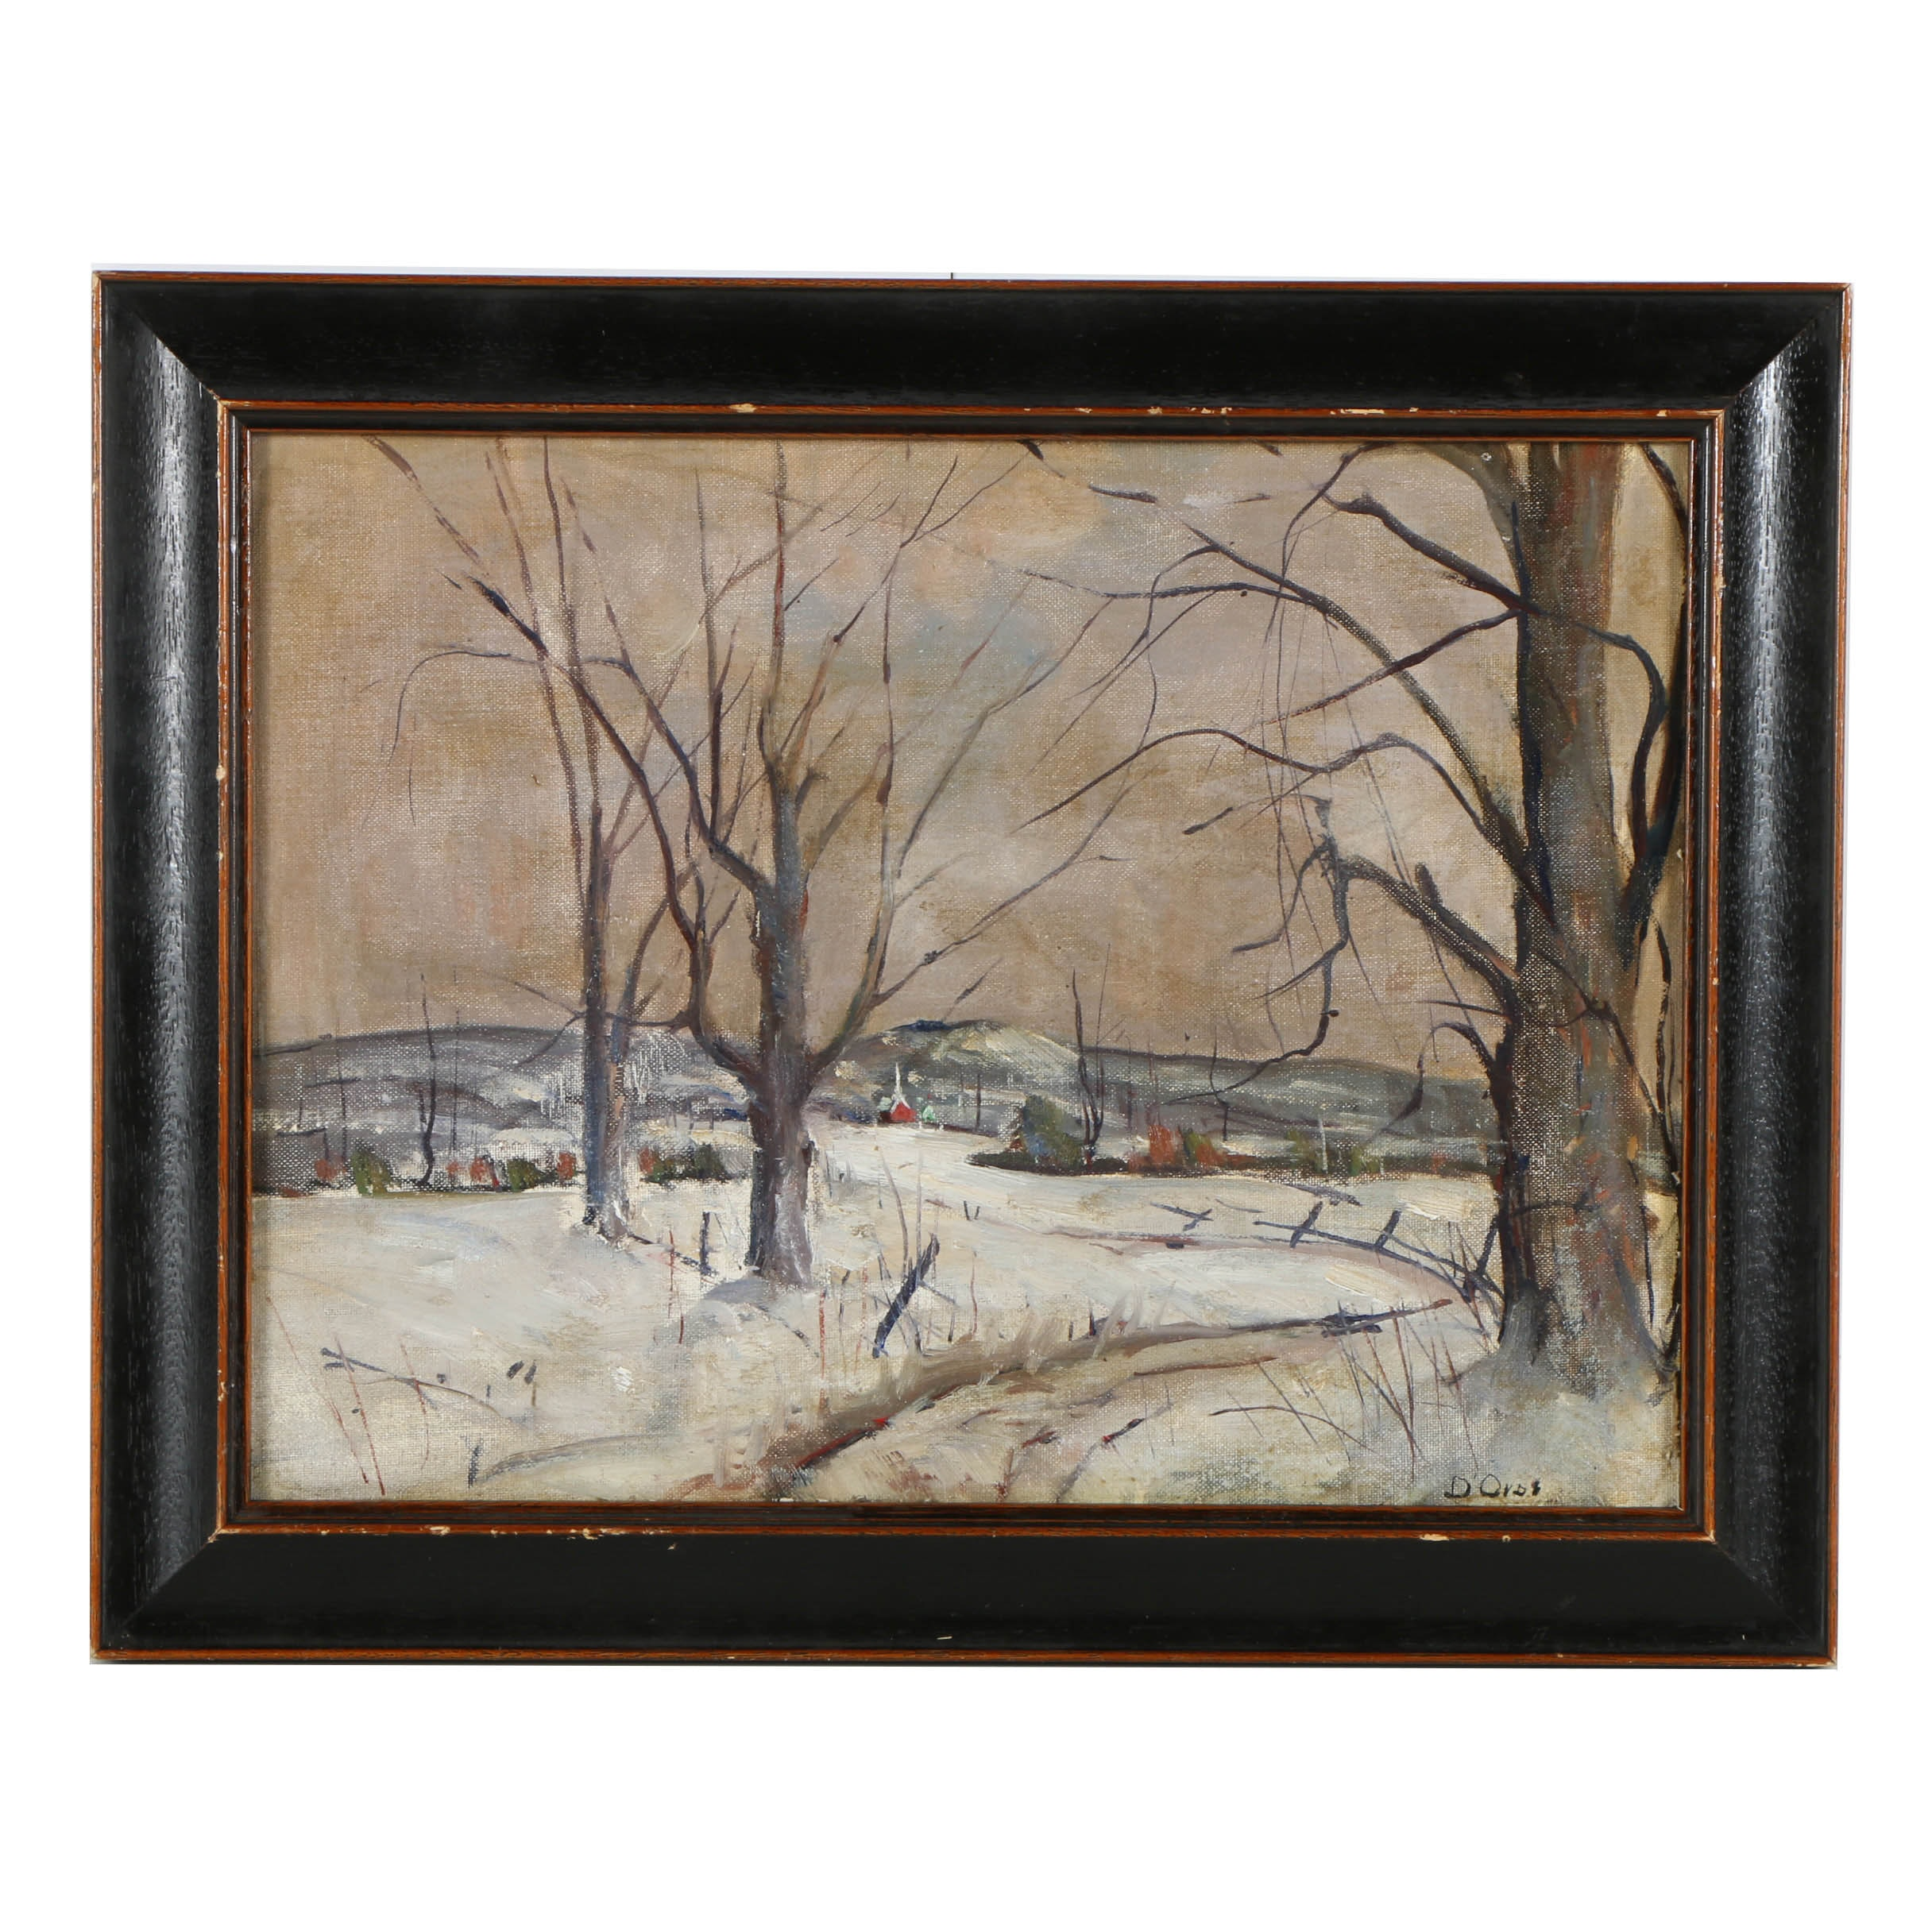 Oil Painting on Canvas Board of a Snowy Landscape